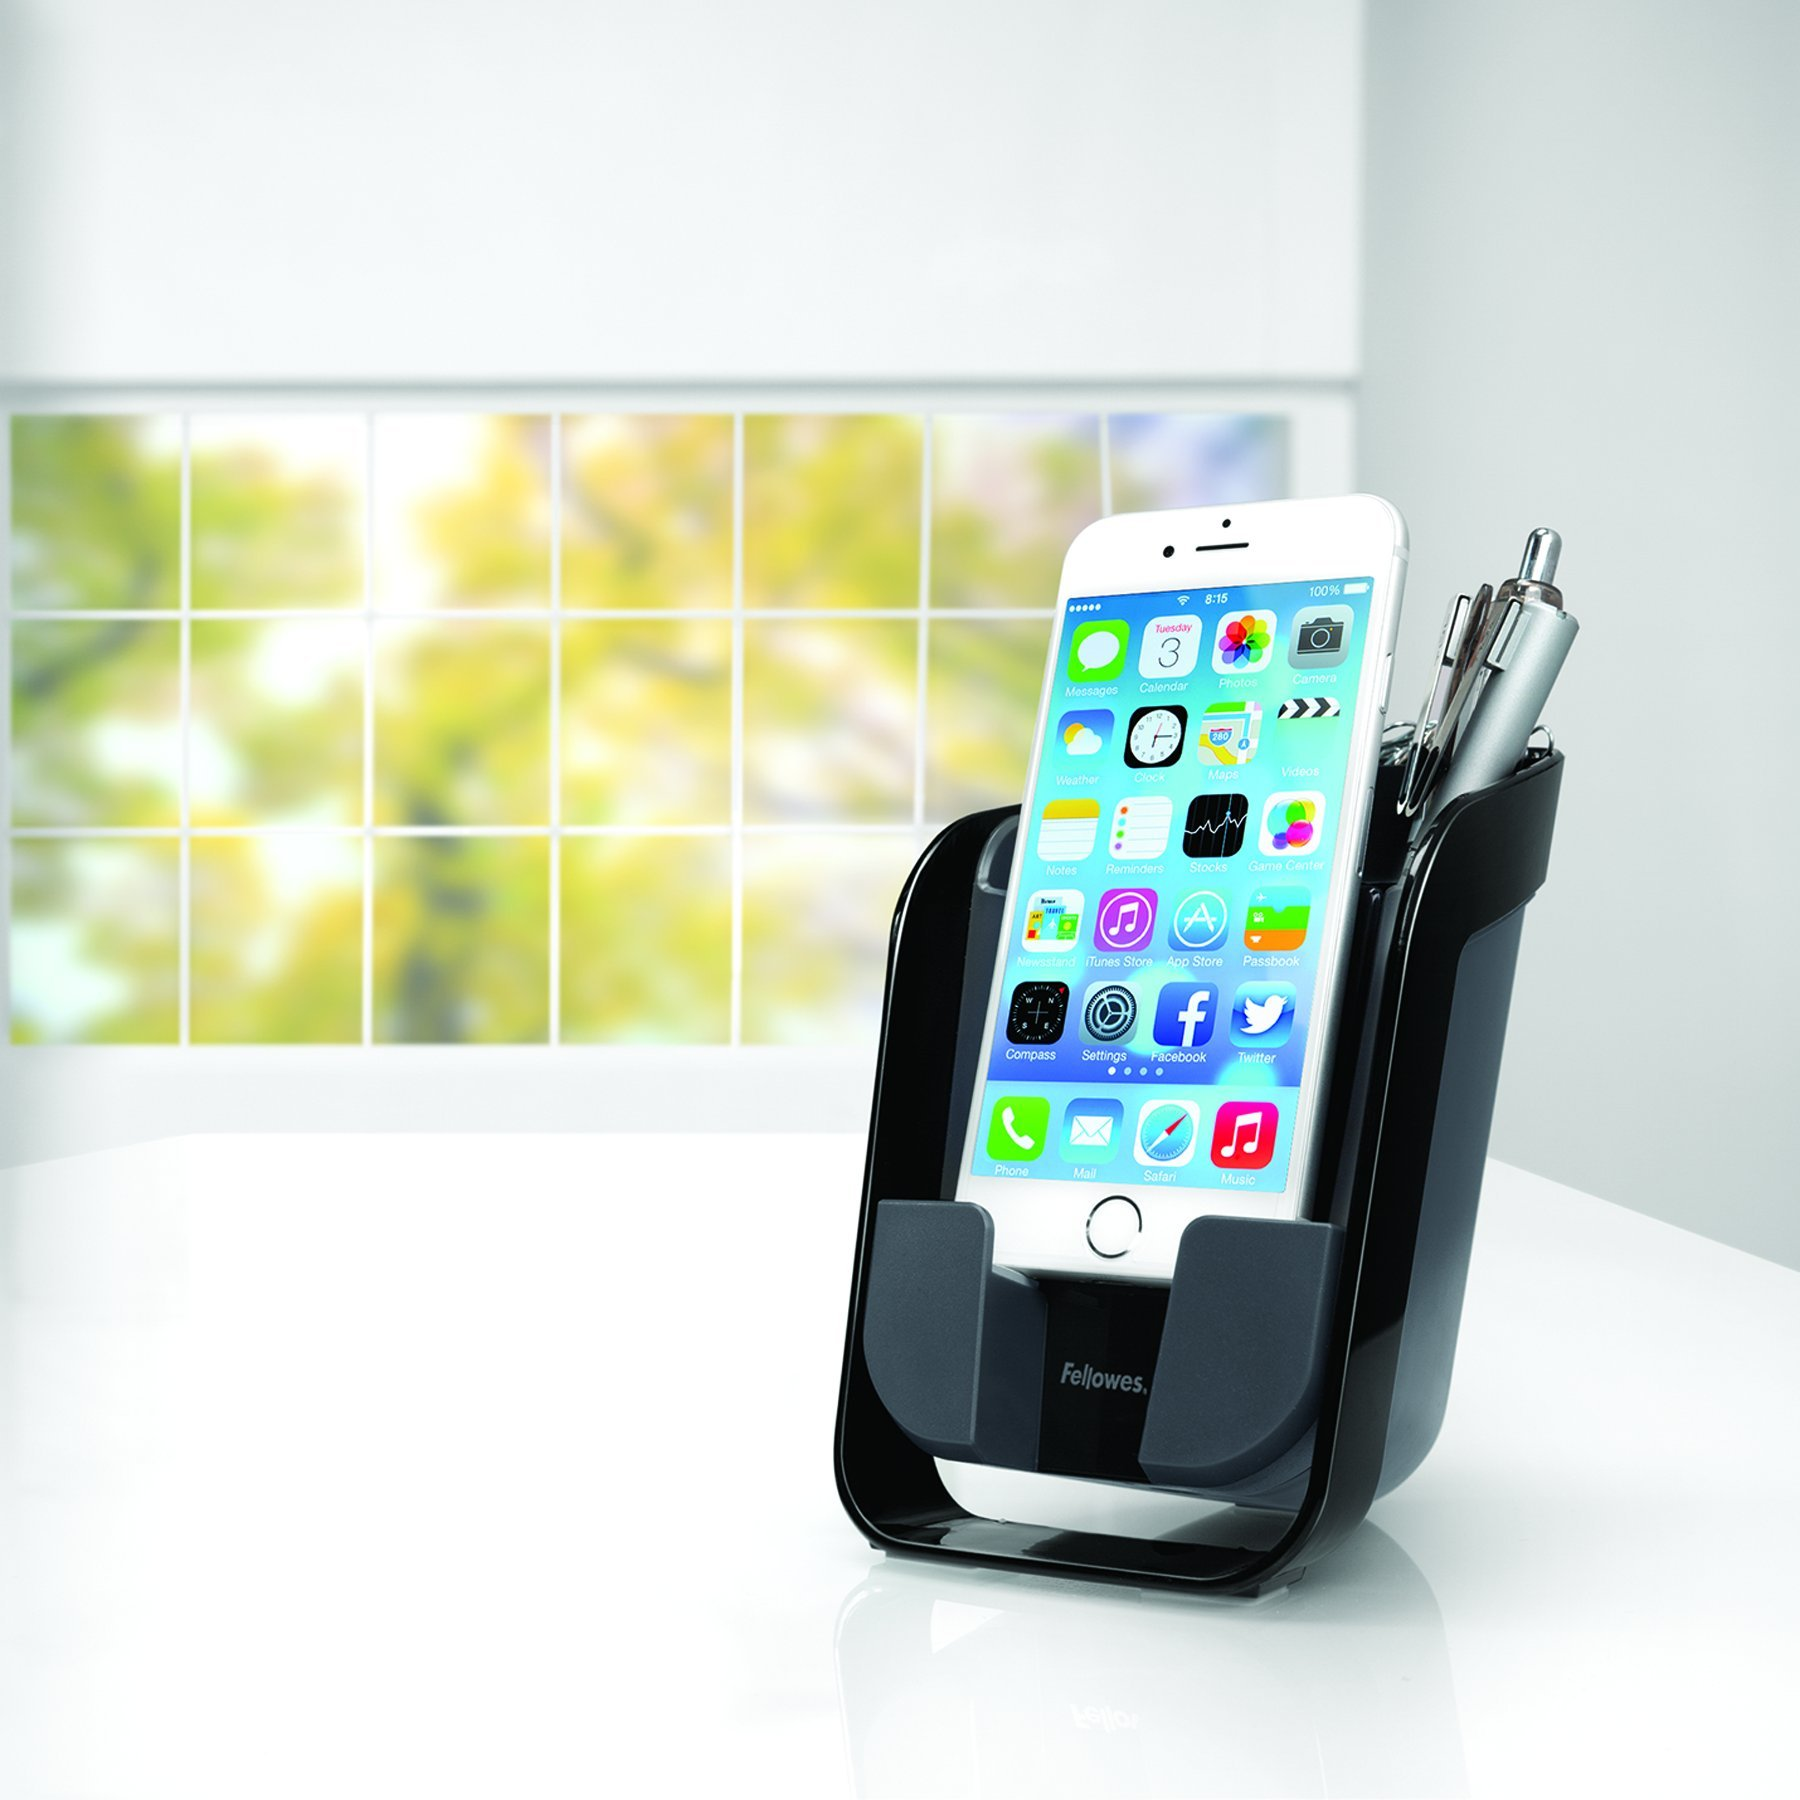 Fellowes I-Spire Series Pencil & Phone Station Smartphone Stand, Black (9473201) by Fellowes